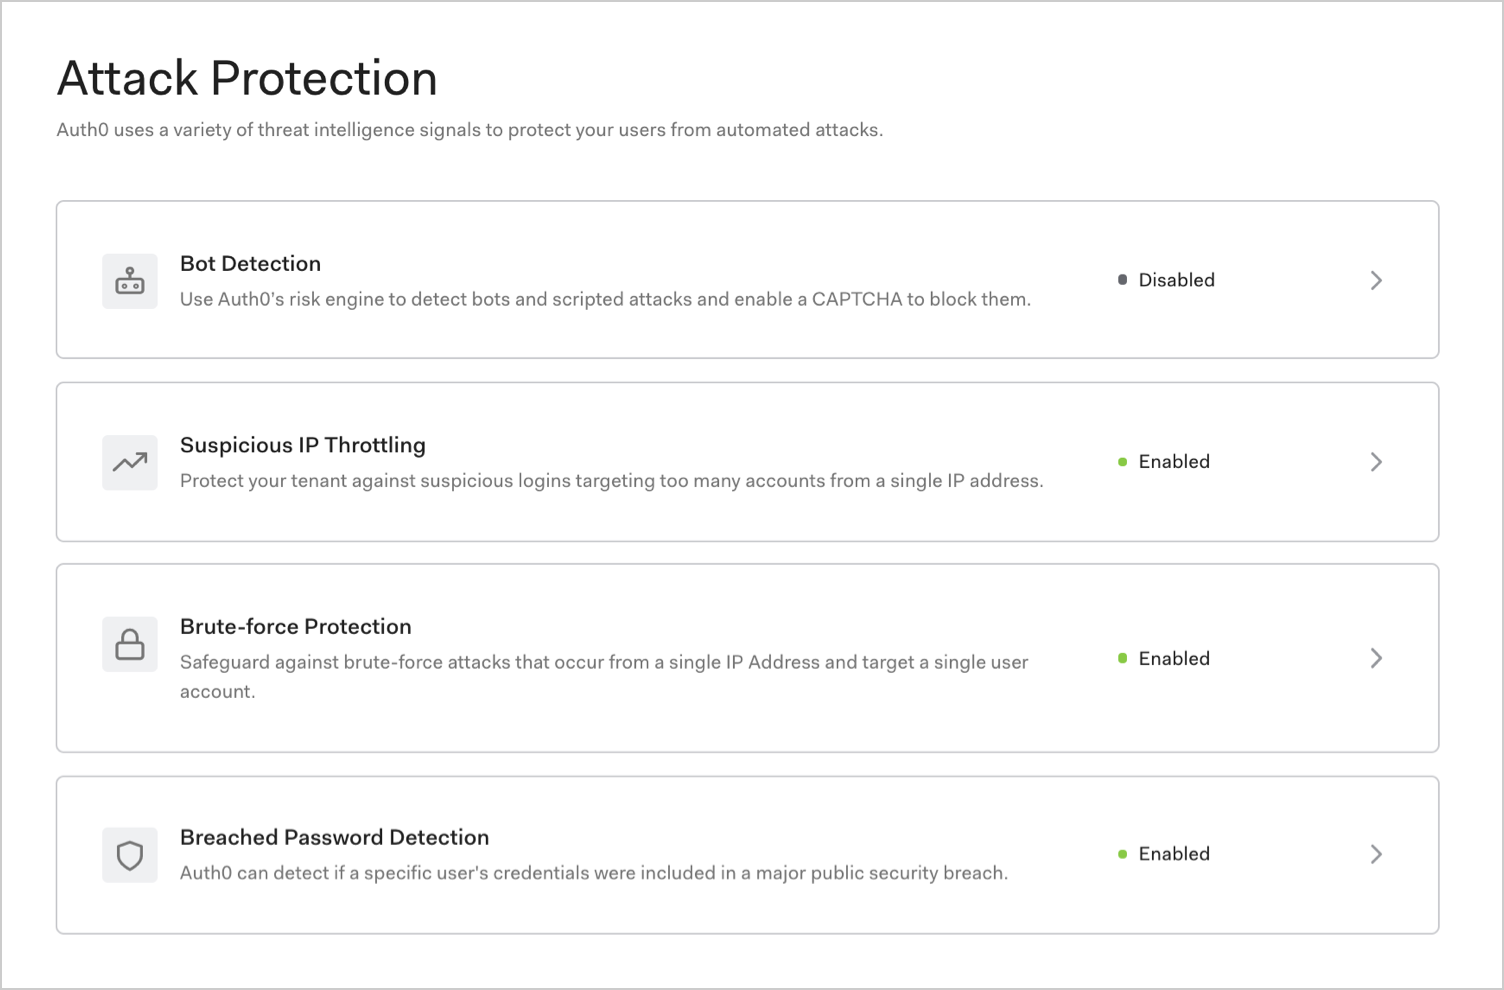 Dashboard - Attack Protection